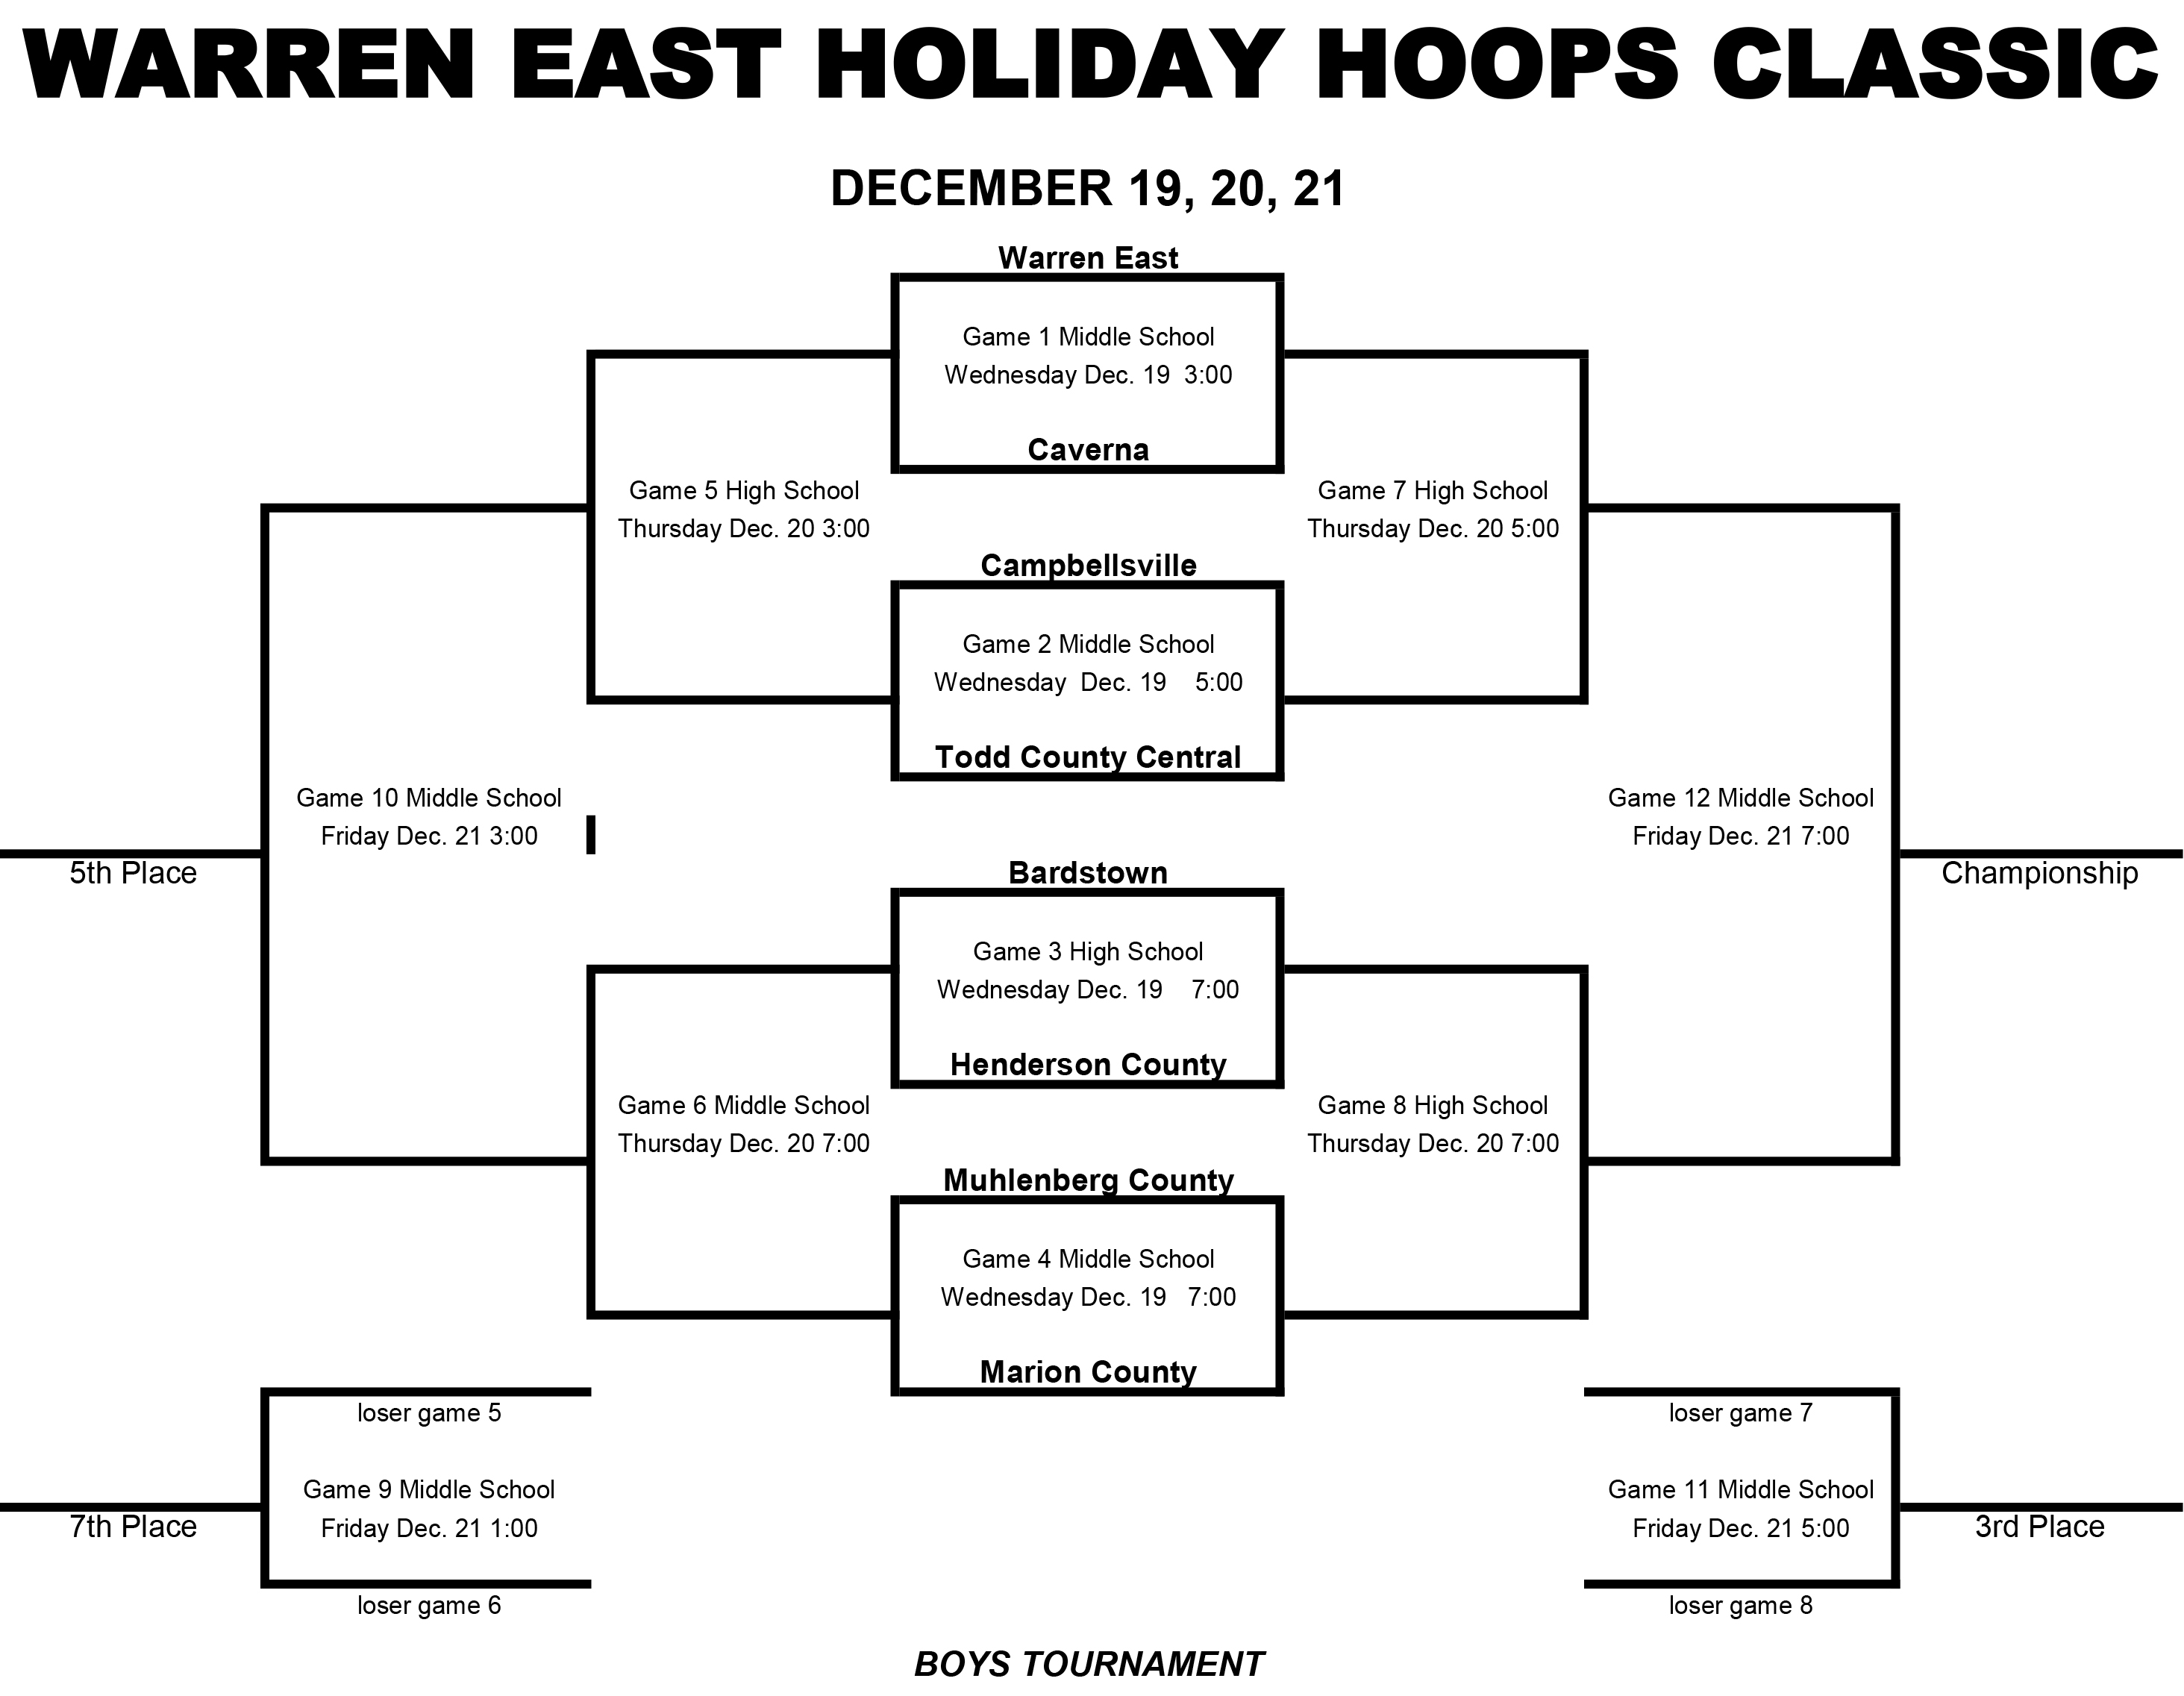 CHS girls', boys' basketball teams to play in holiday classic